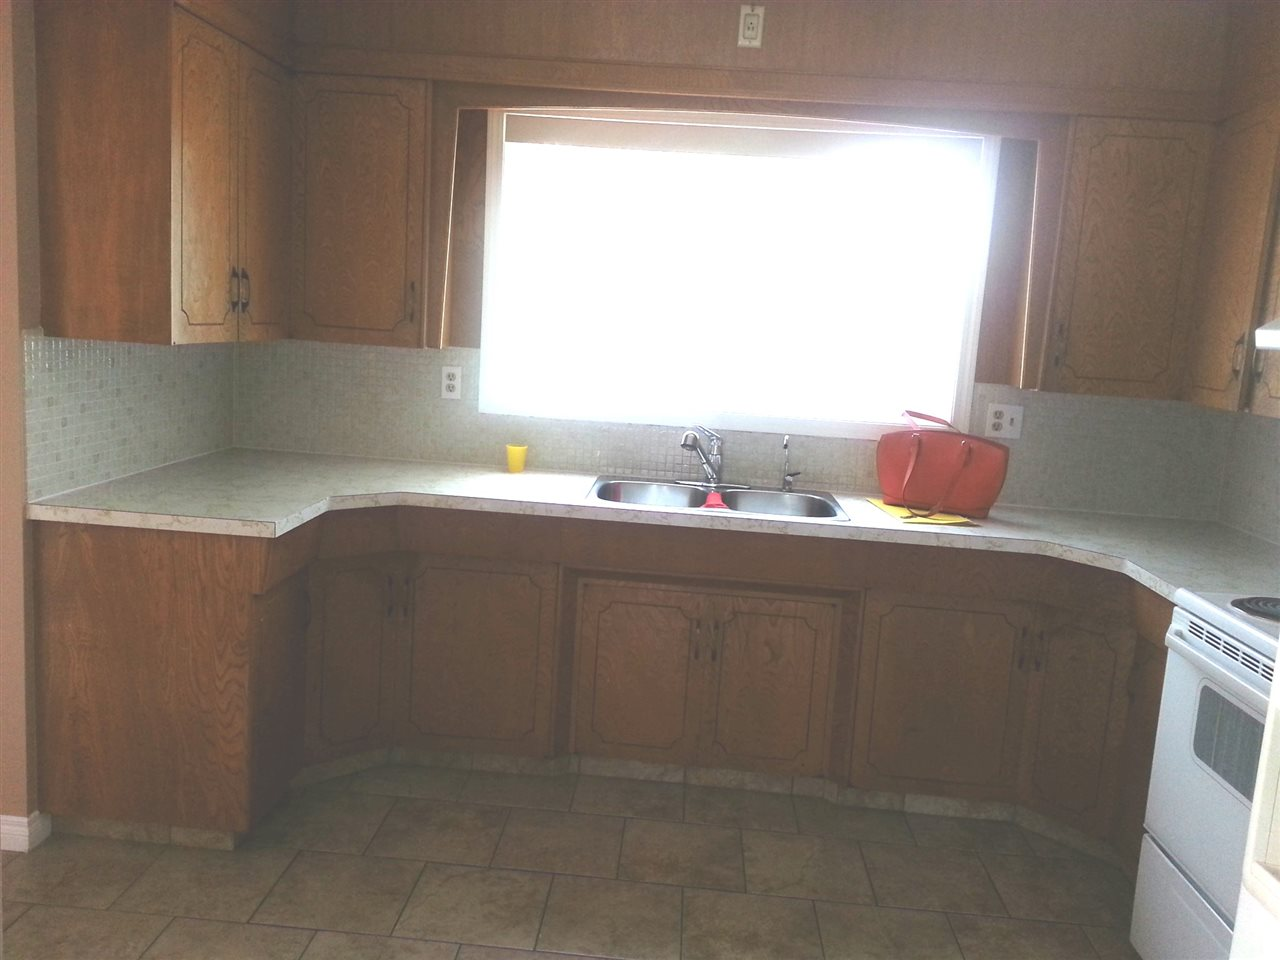 Good size kitchen in good shape